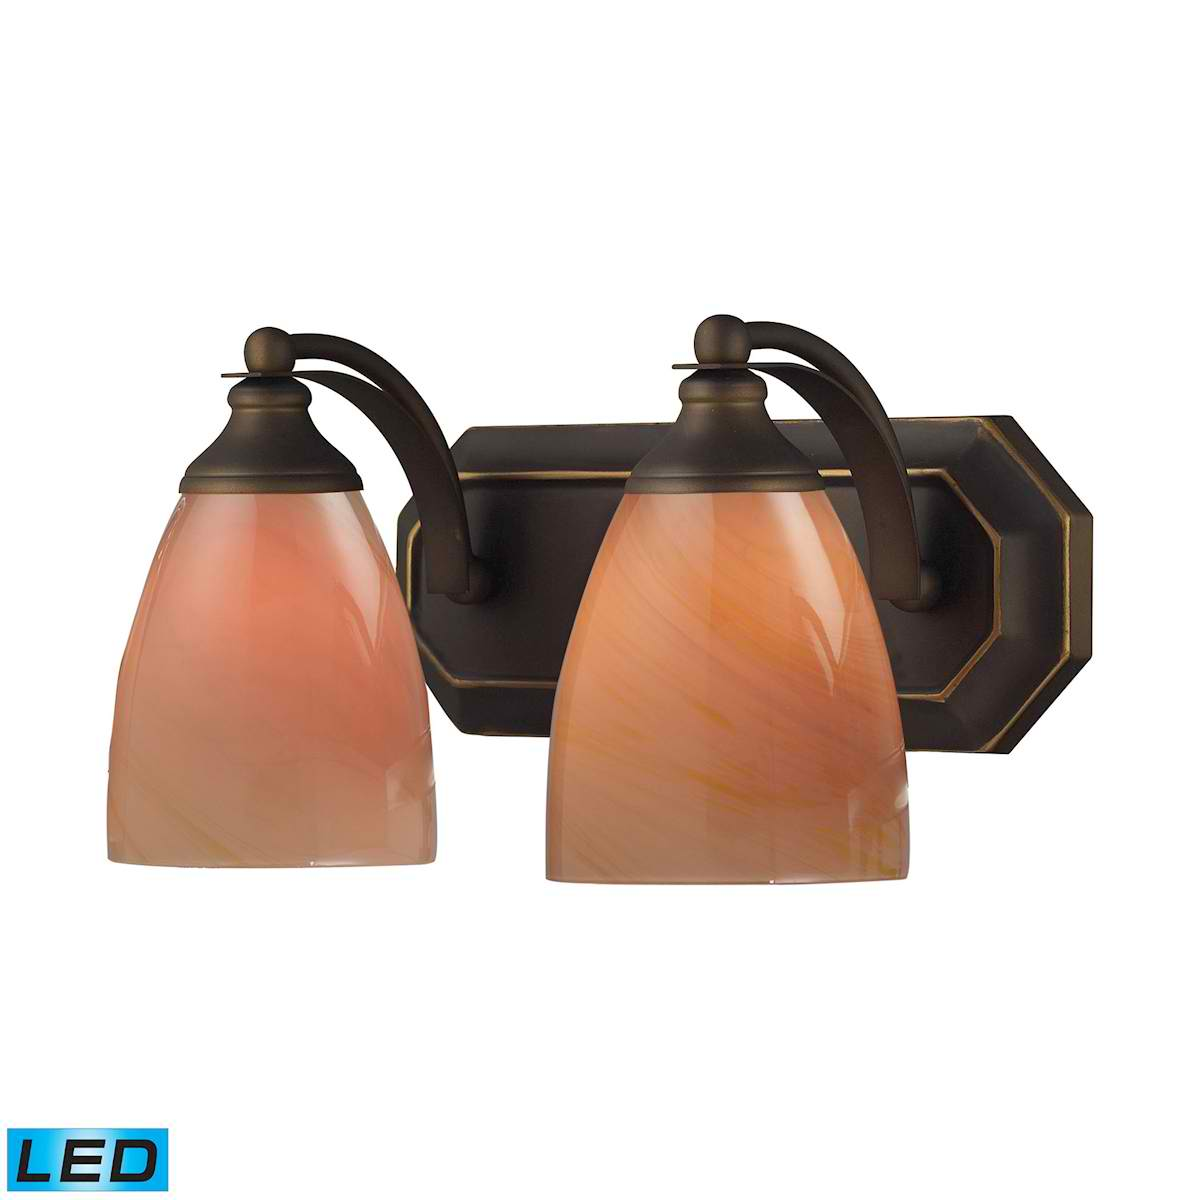 2 Light Vanity in Aged Bronze and Sandy Glass - LED, 800 Lumens (1600 Lumens Total) with Full Scale